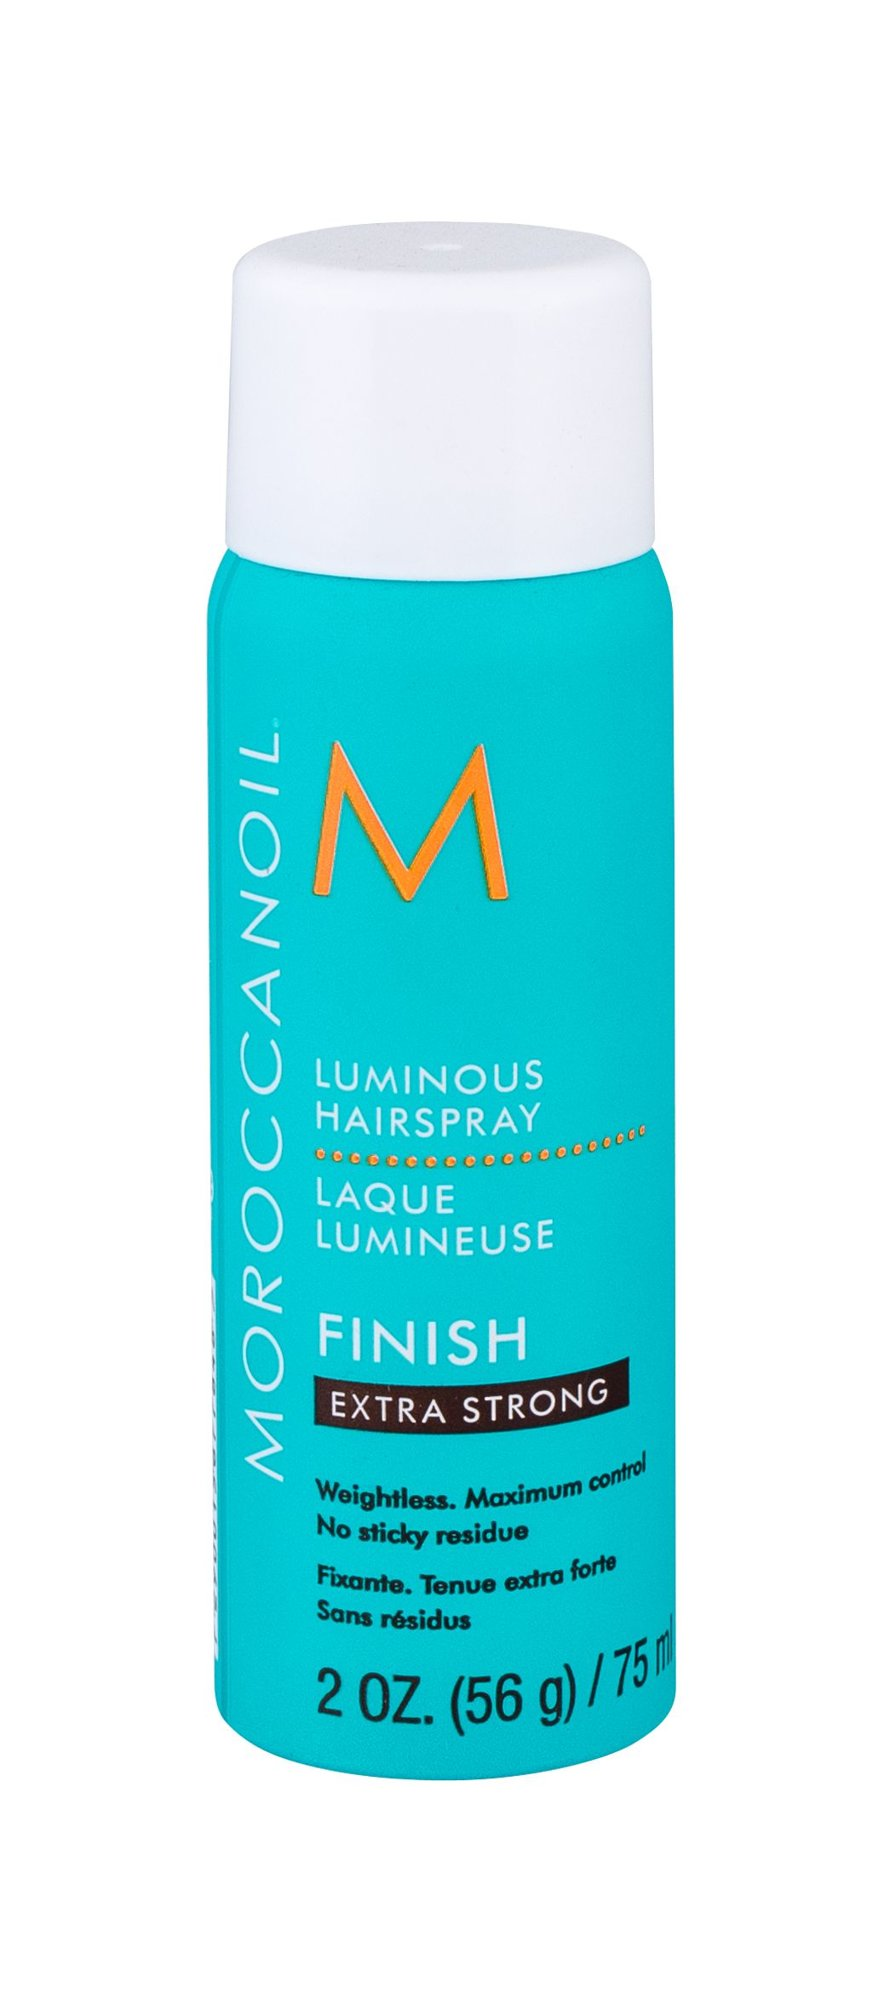 Moroccanoil Luminous Hairspray Extra Strong Finish Cosmetic 75ml